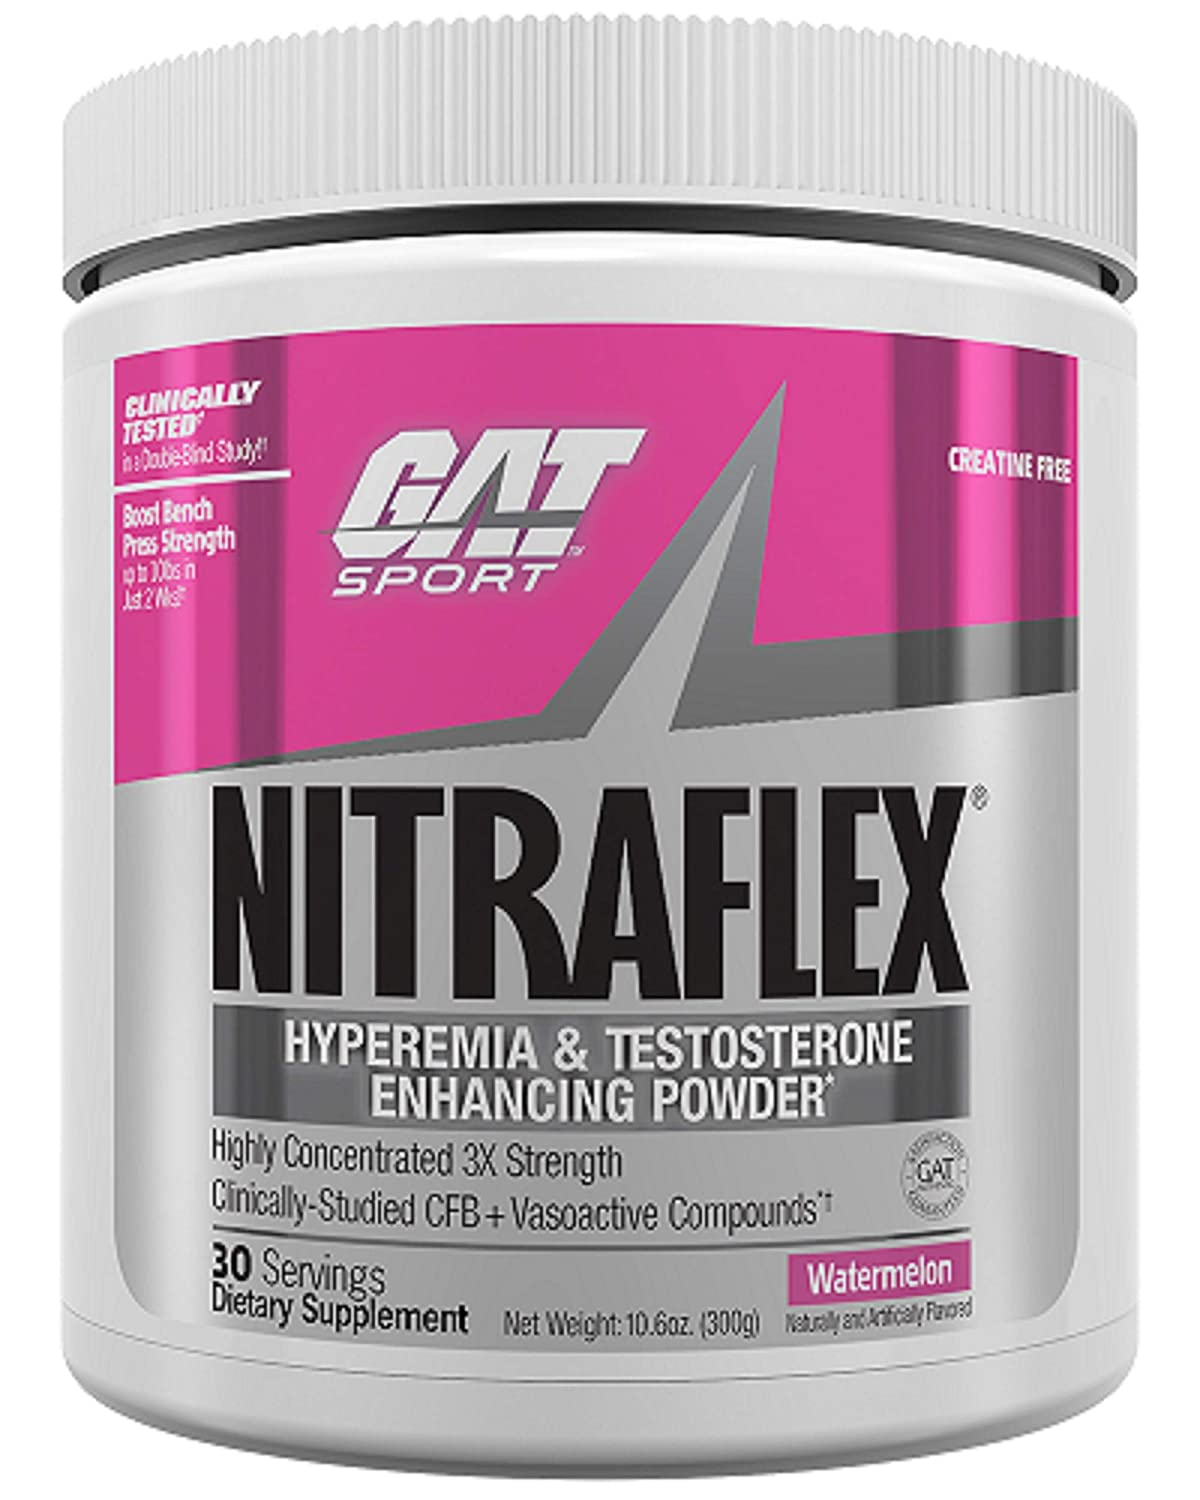 GAT Clinically Tested Nitraflex, Testosterone Enhancing Pre Workout, Watermelon, 300 Gram by GAT